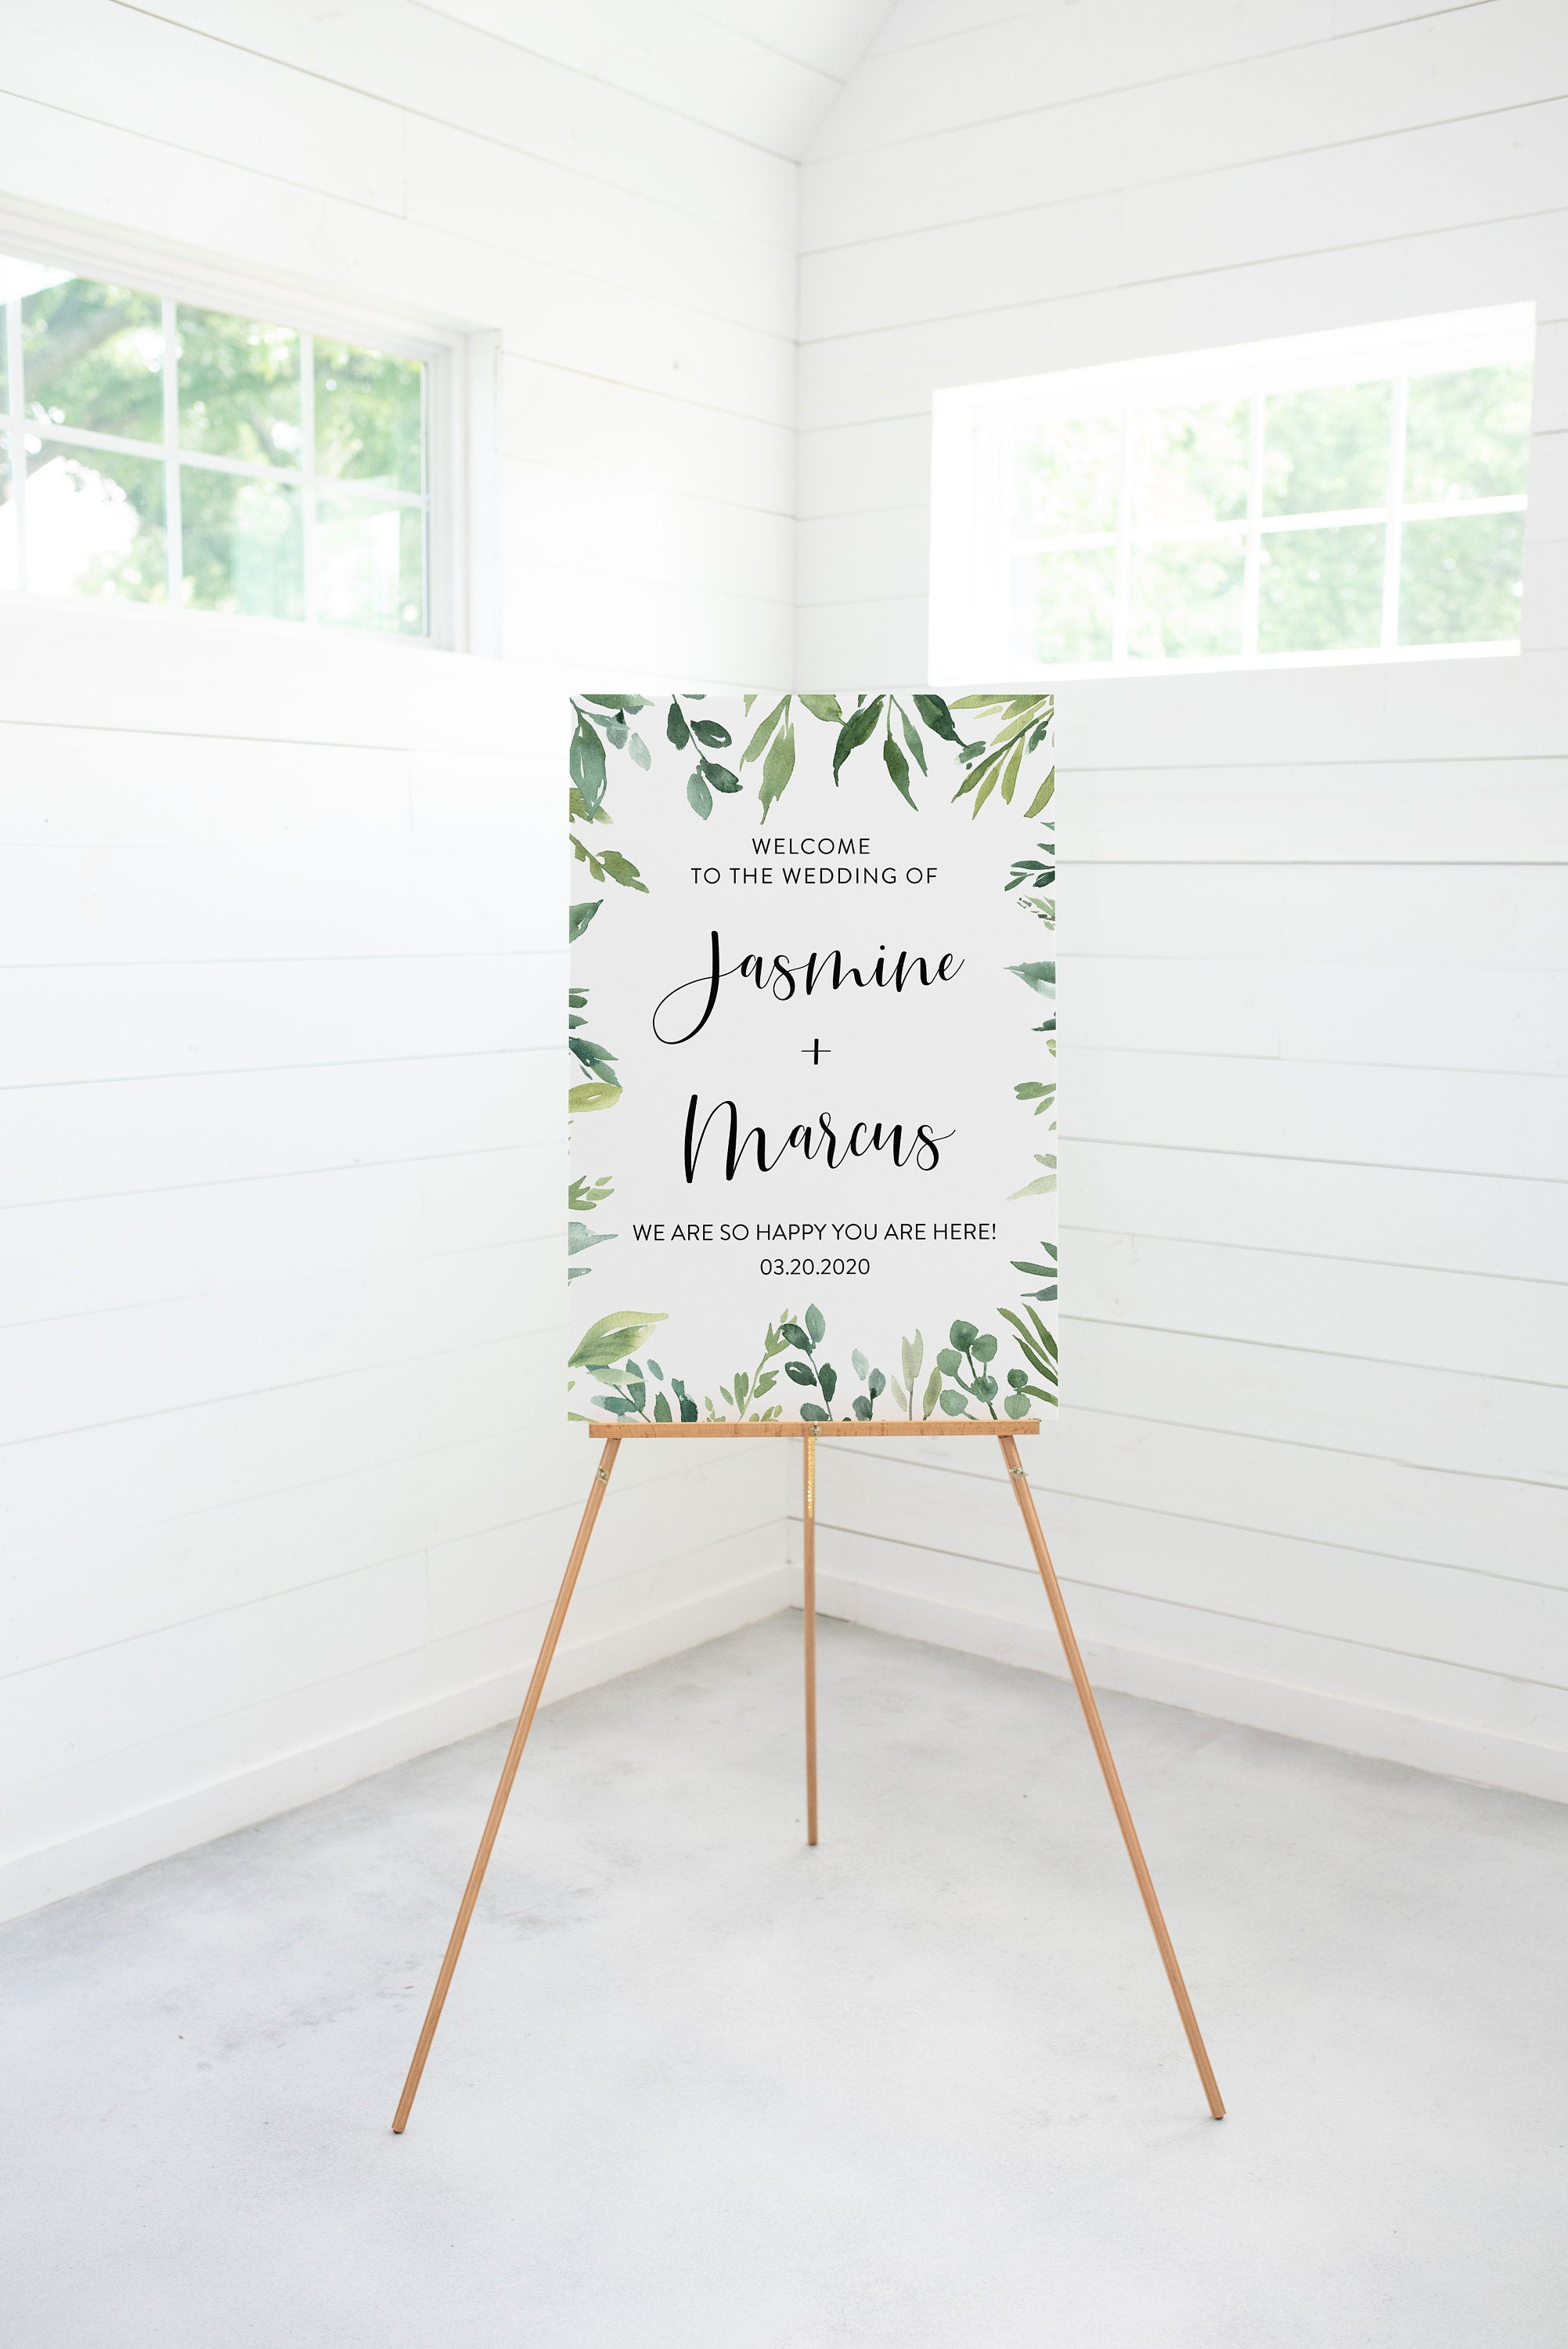 Wedding Printable Welcome Sign Editable Template Instant Download Greenery - Jasmine